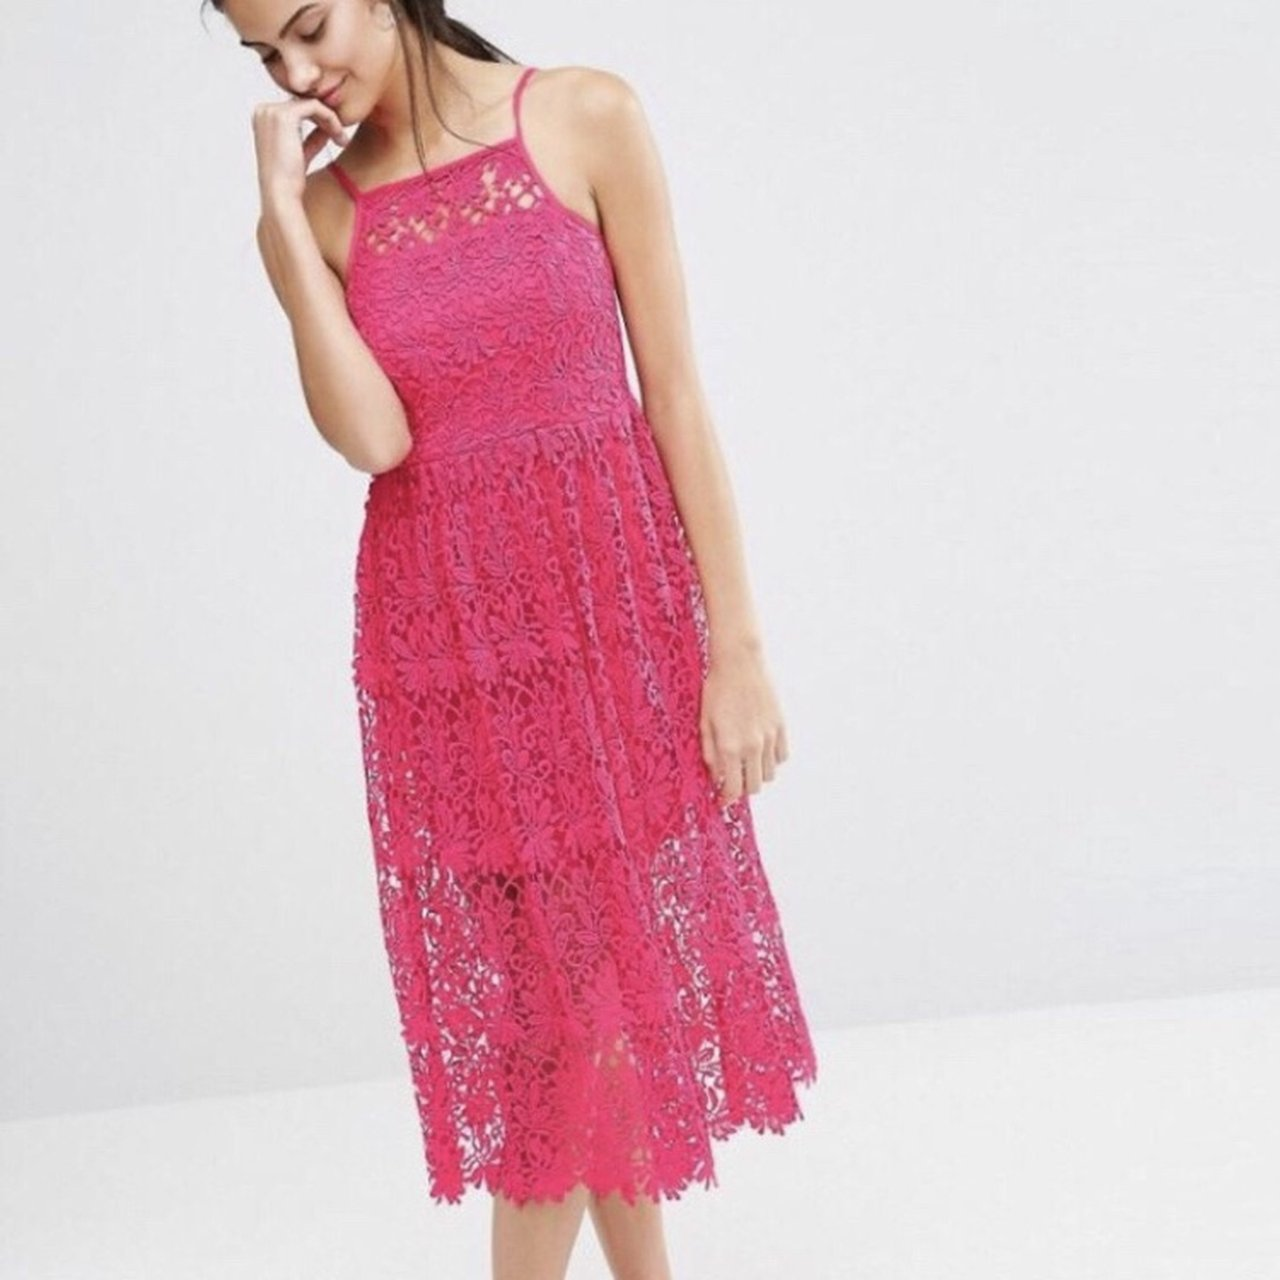 d4a161c864b7 River Island Hot Pink Lace Midi Dress Never been worn Lace 6 - Depop